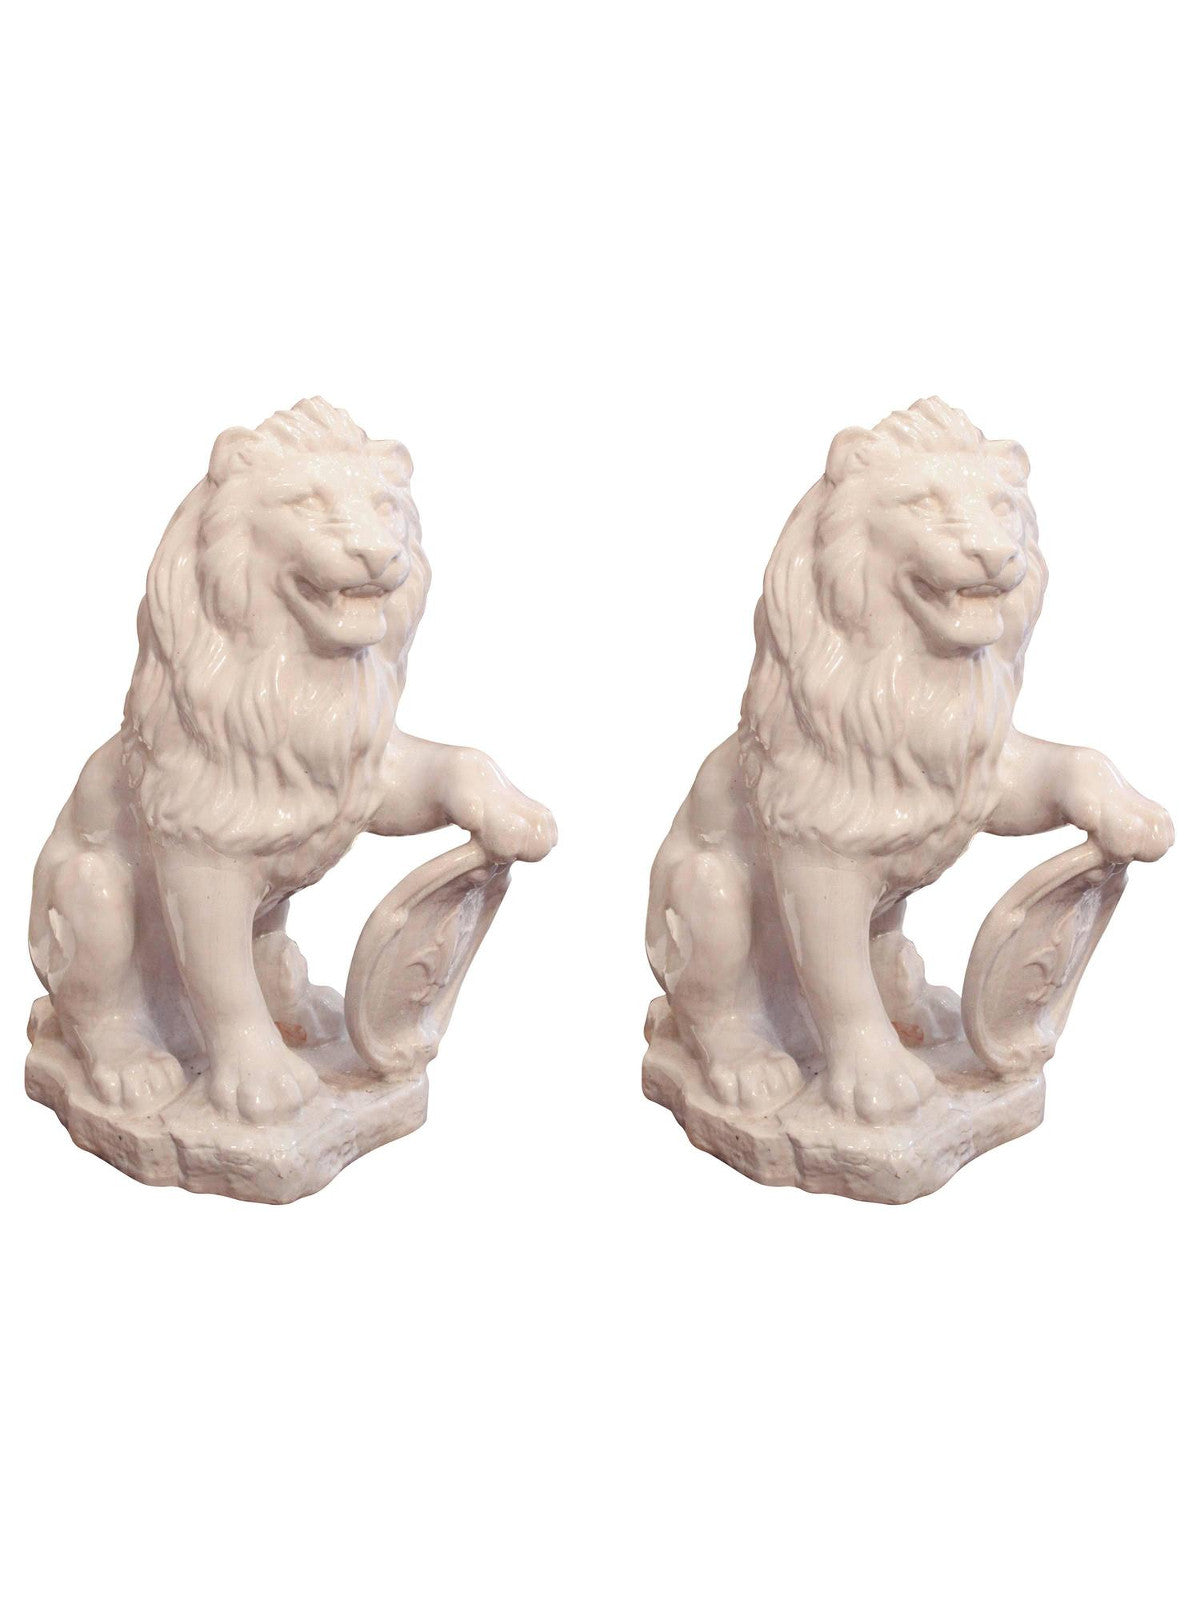 White Terra Cotta Lions, Pair